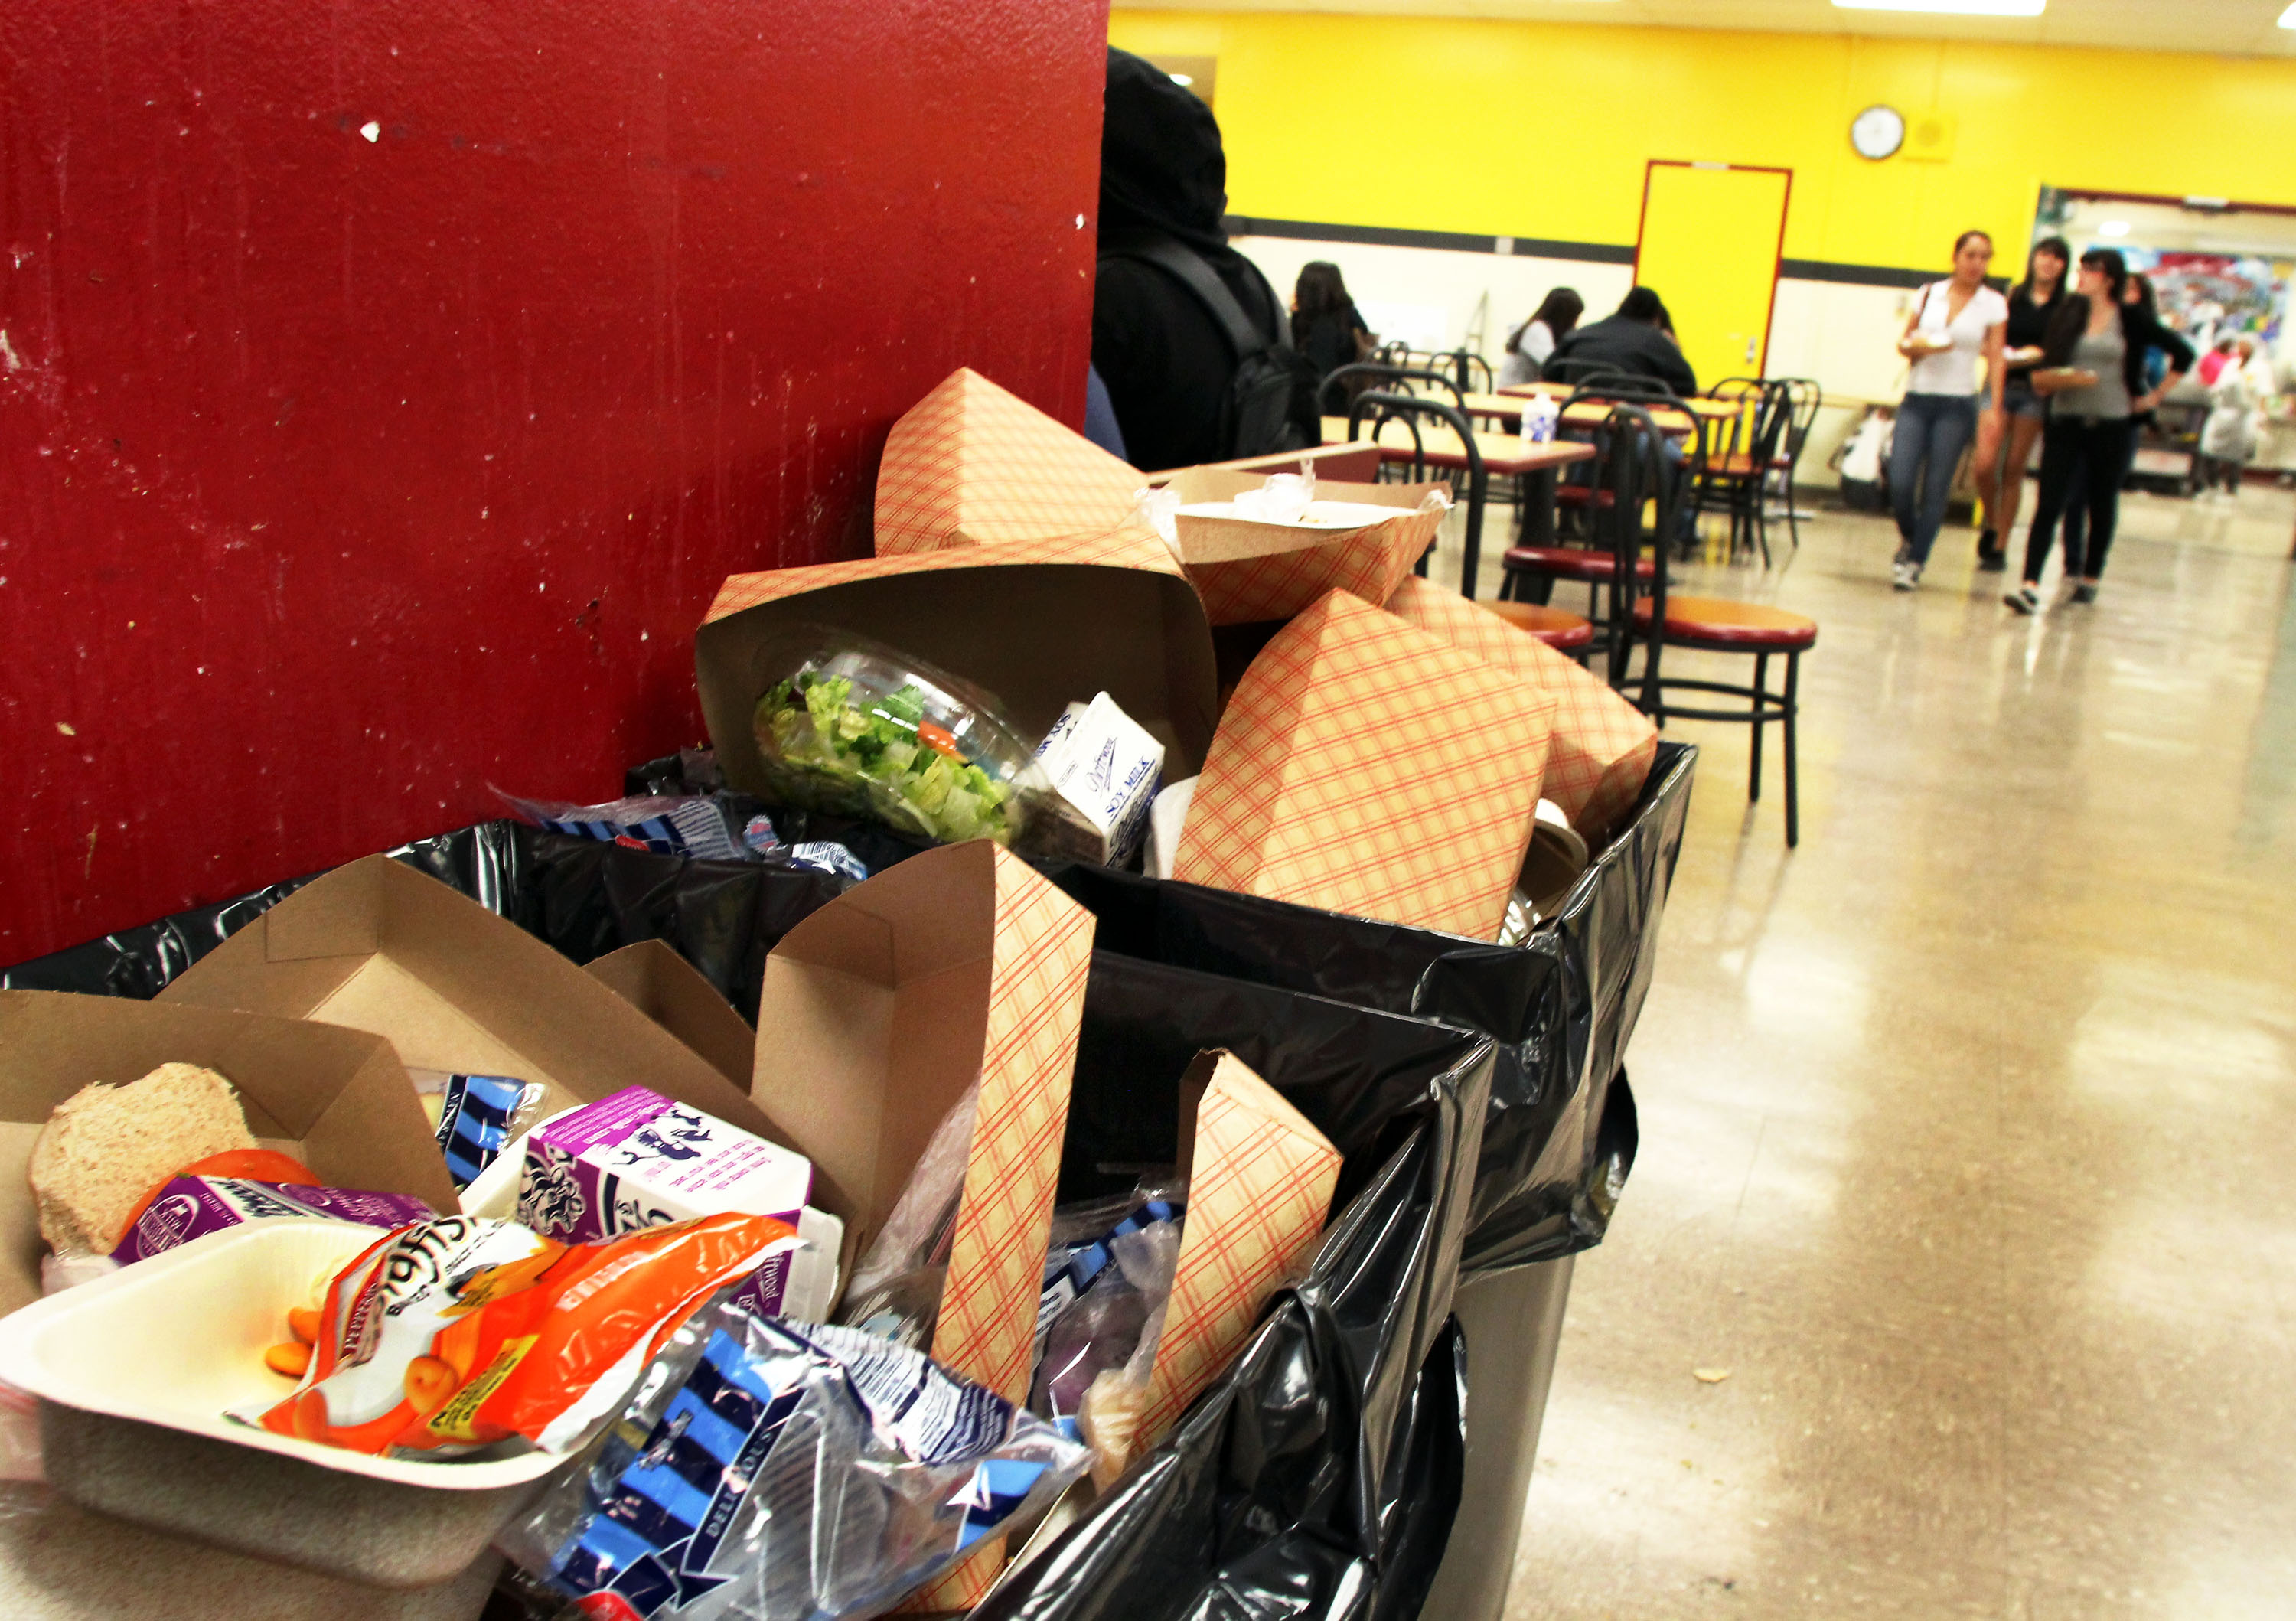 Healthier school lunch draws mixed reactions - Boyle Heights